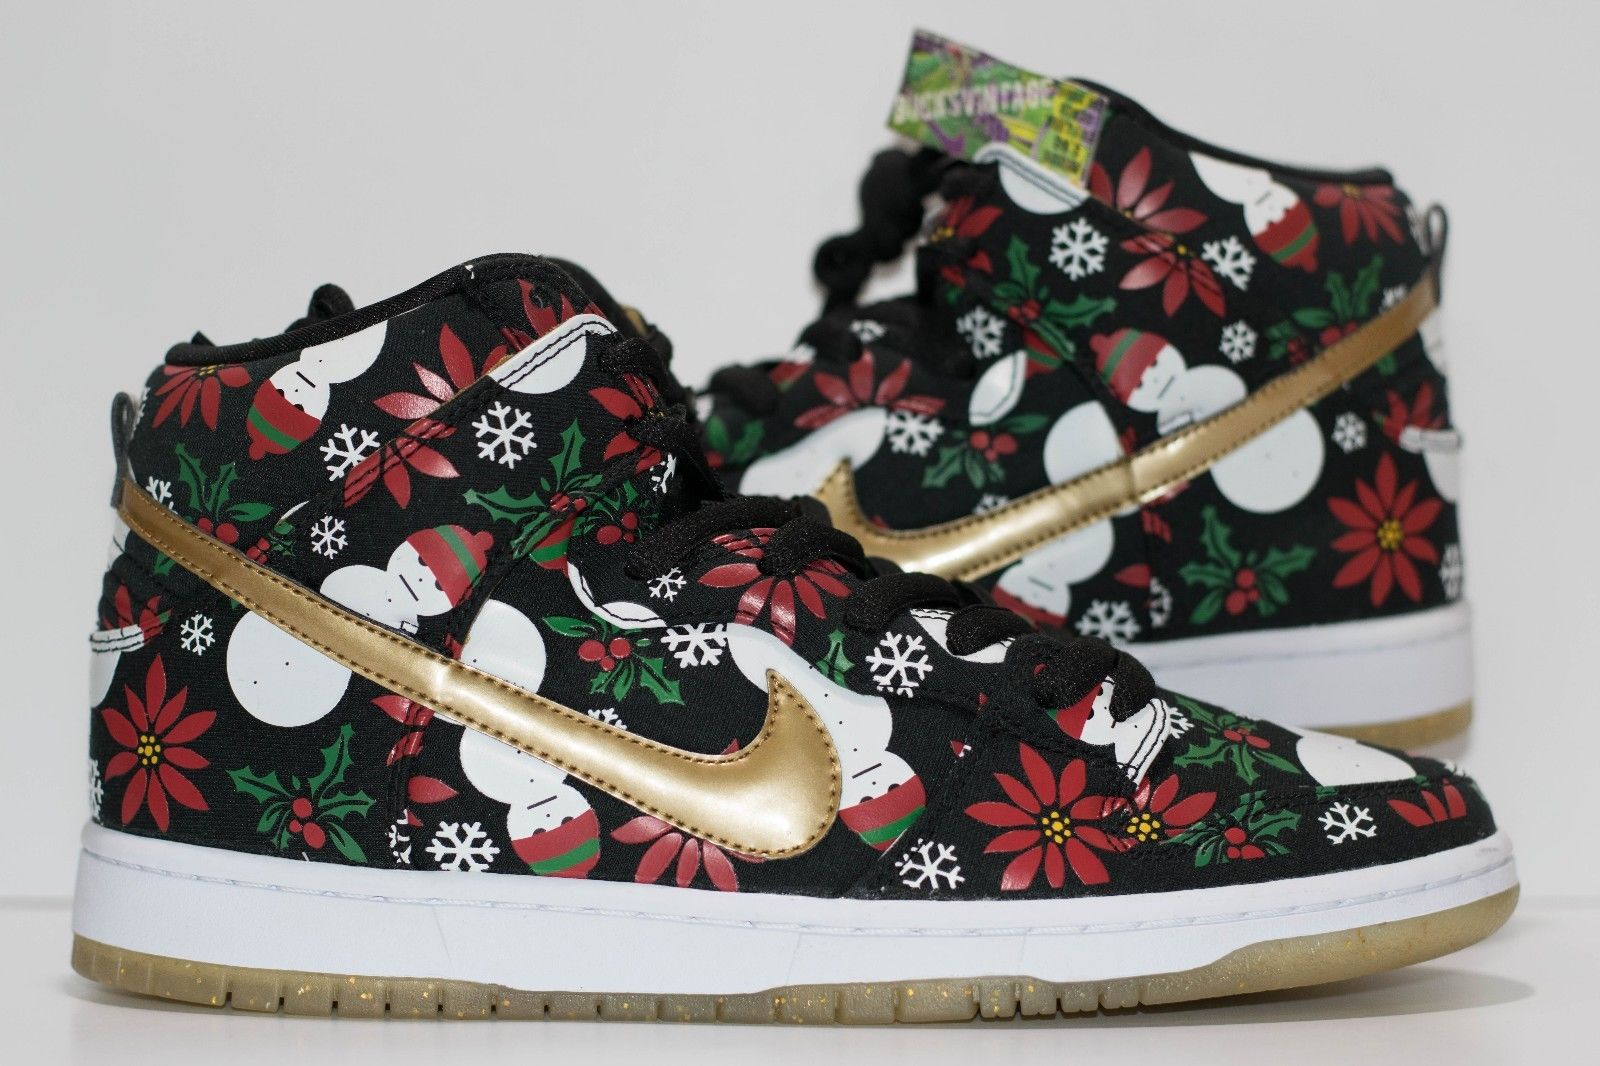 Size 10 | 2013 Nike Dunk SB X CONCEPTS BLACK Ugly Christmas Sweater ...